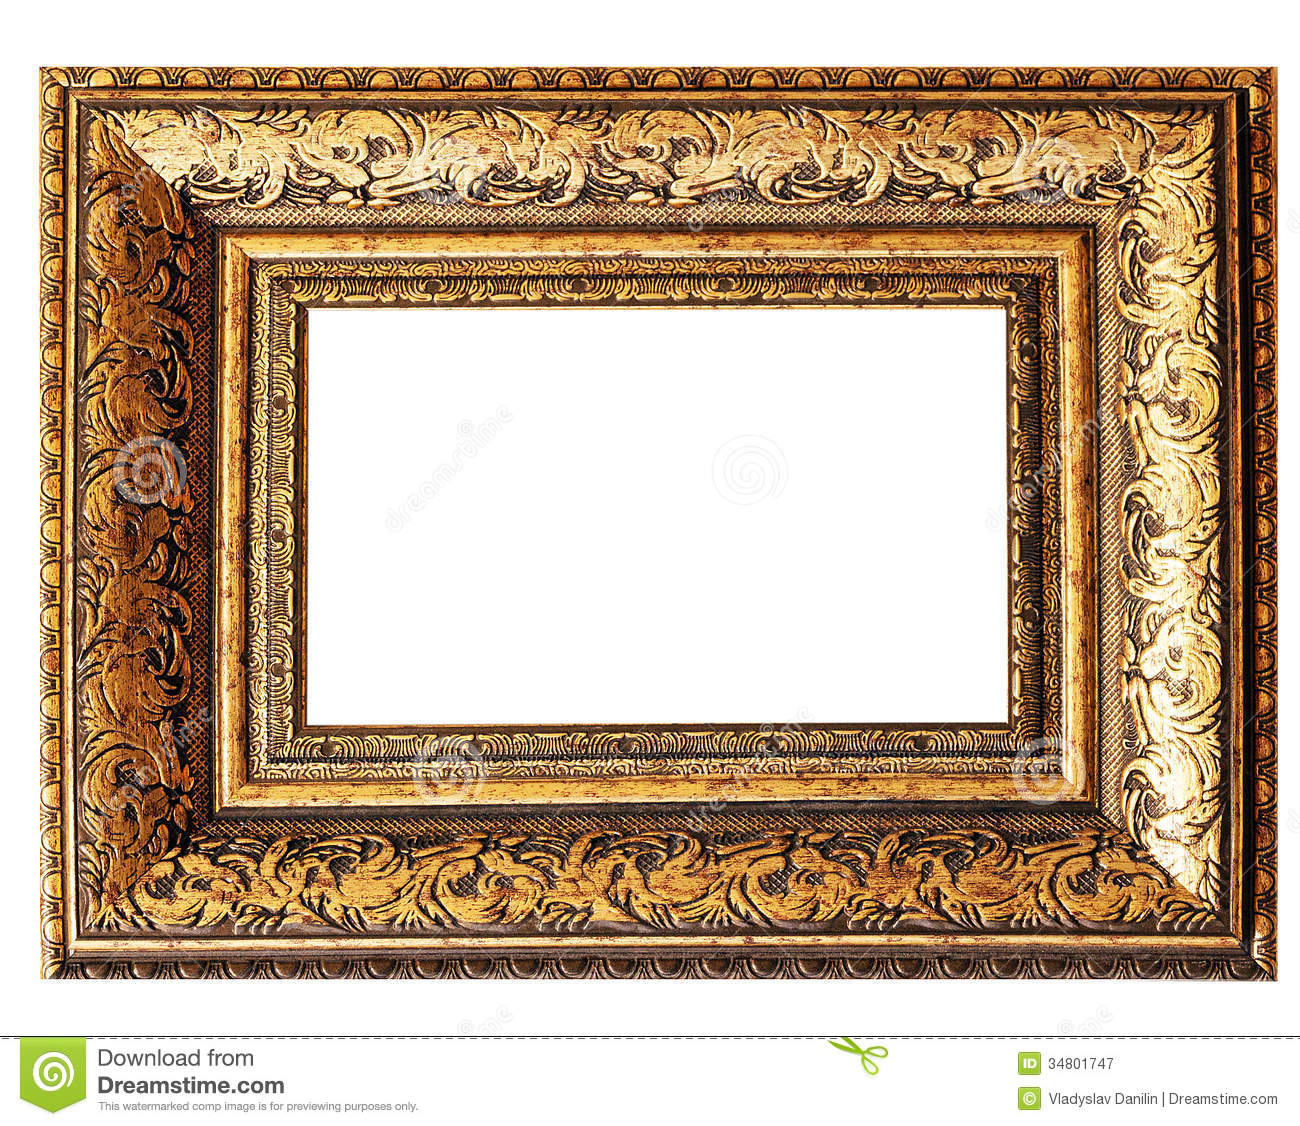 Art picture frame stock image. Image of object, baroque - 34801747